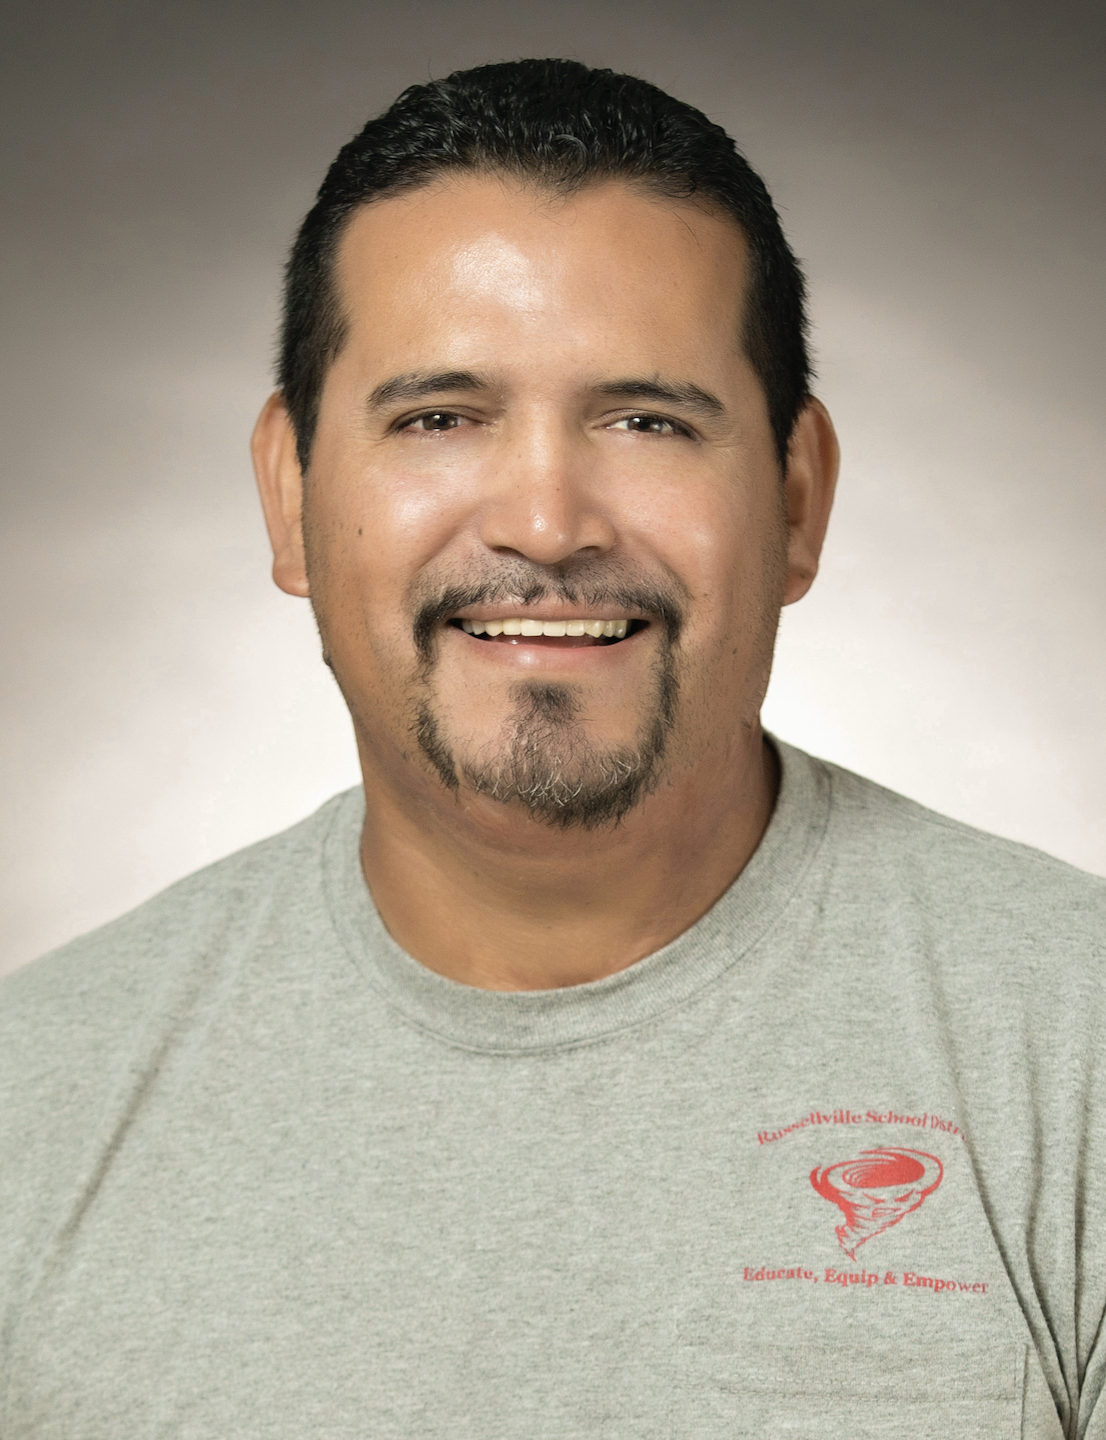 Photo of Selvin Estrada, Lead Maintenance